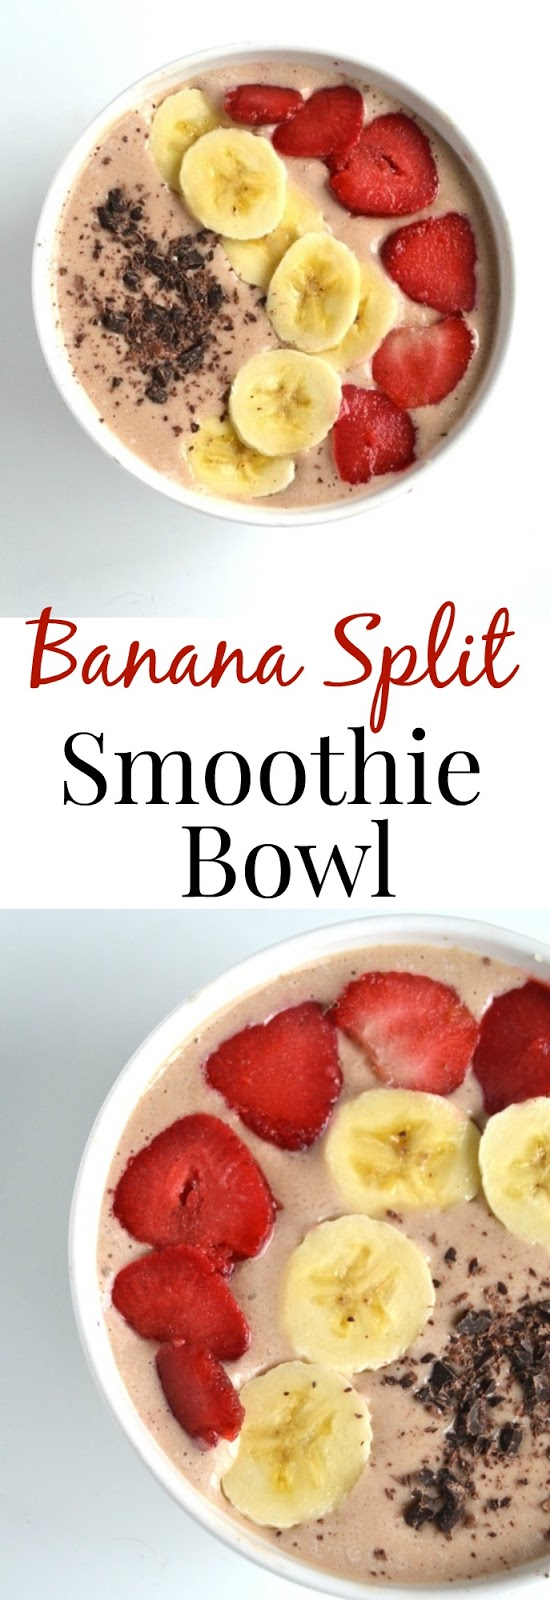 This Banana Split Smoothie Bowl tastes like your favorite dessert but is much healthier! It has banana, strawberries and chocolate to make it just like a banana split! www.nutritionistreviews.com